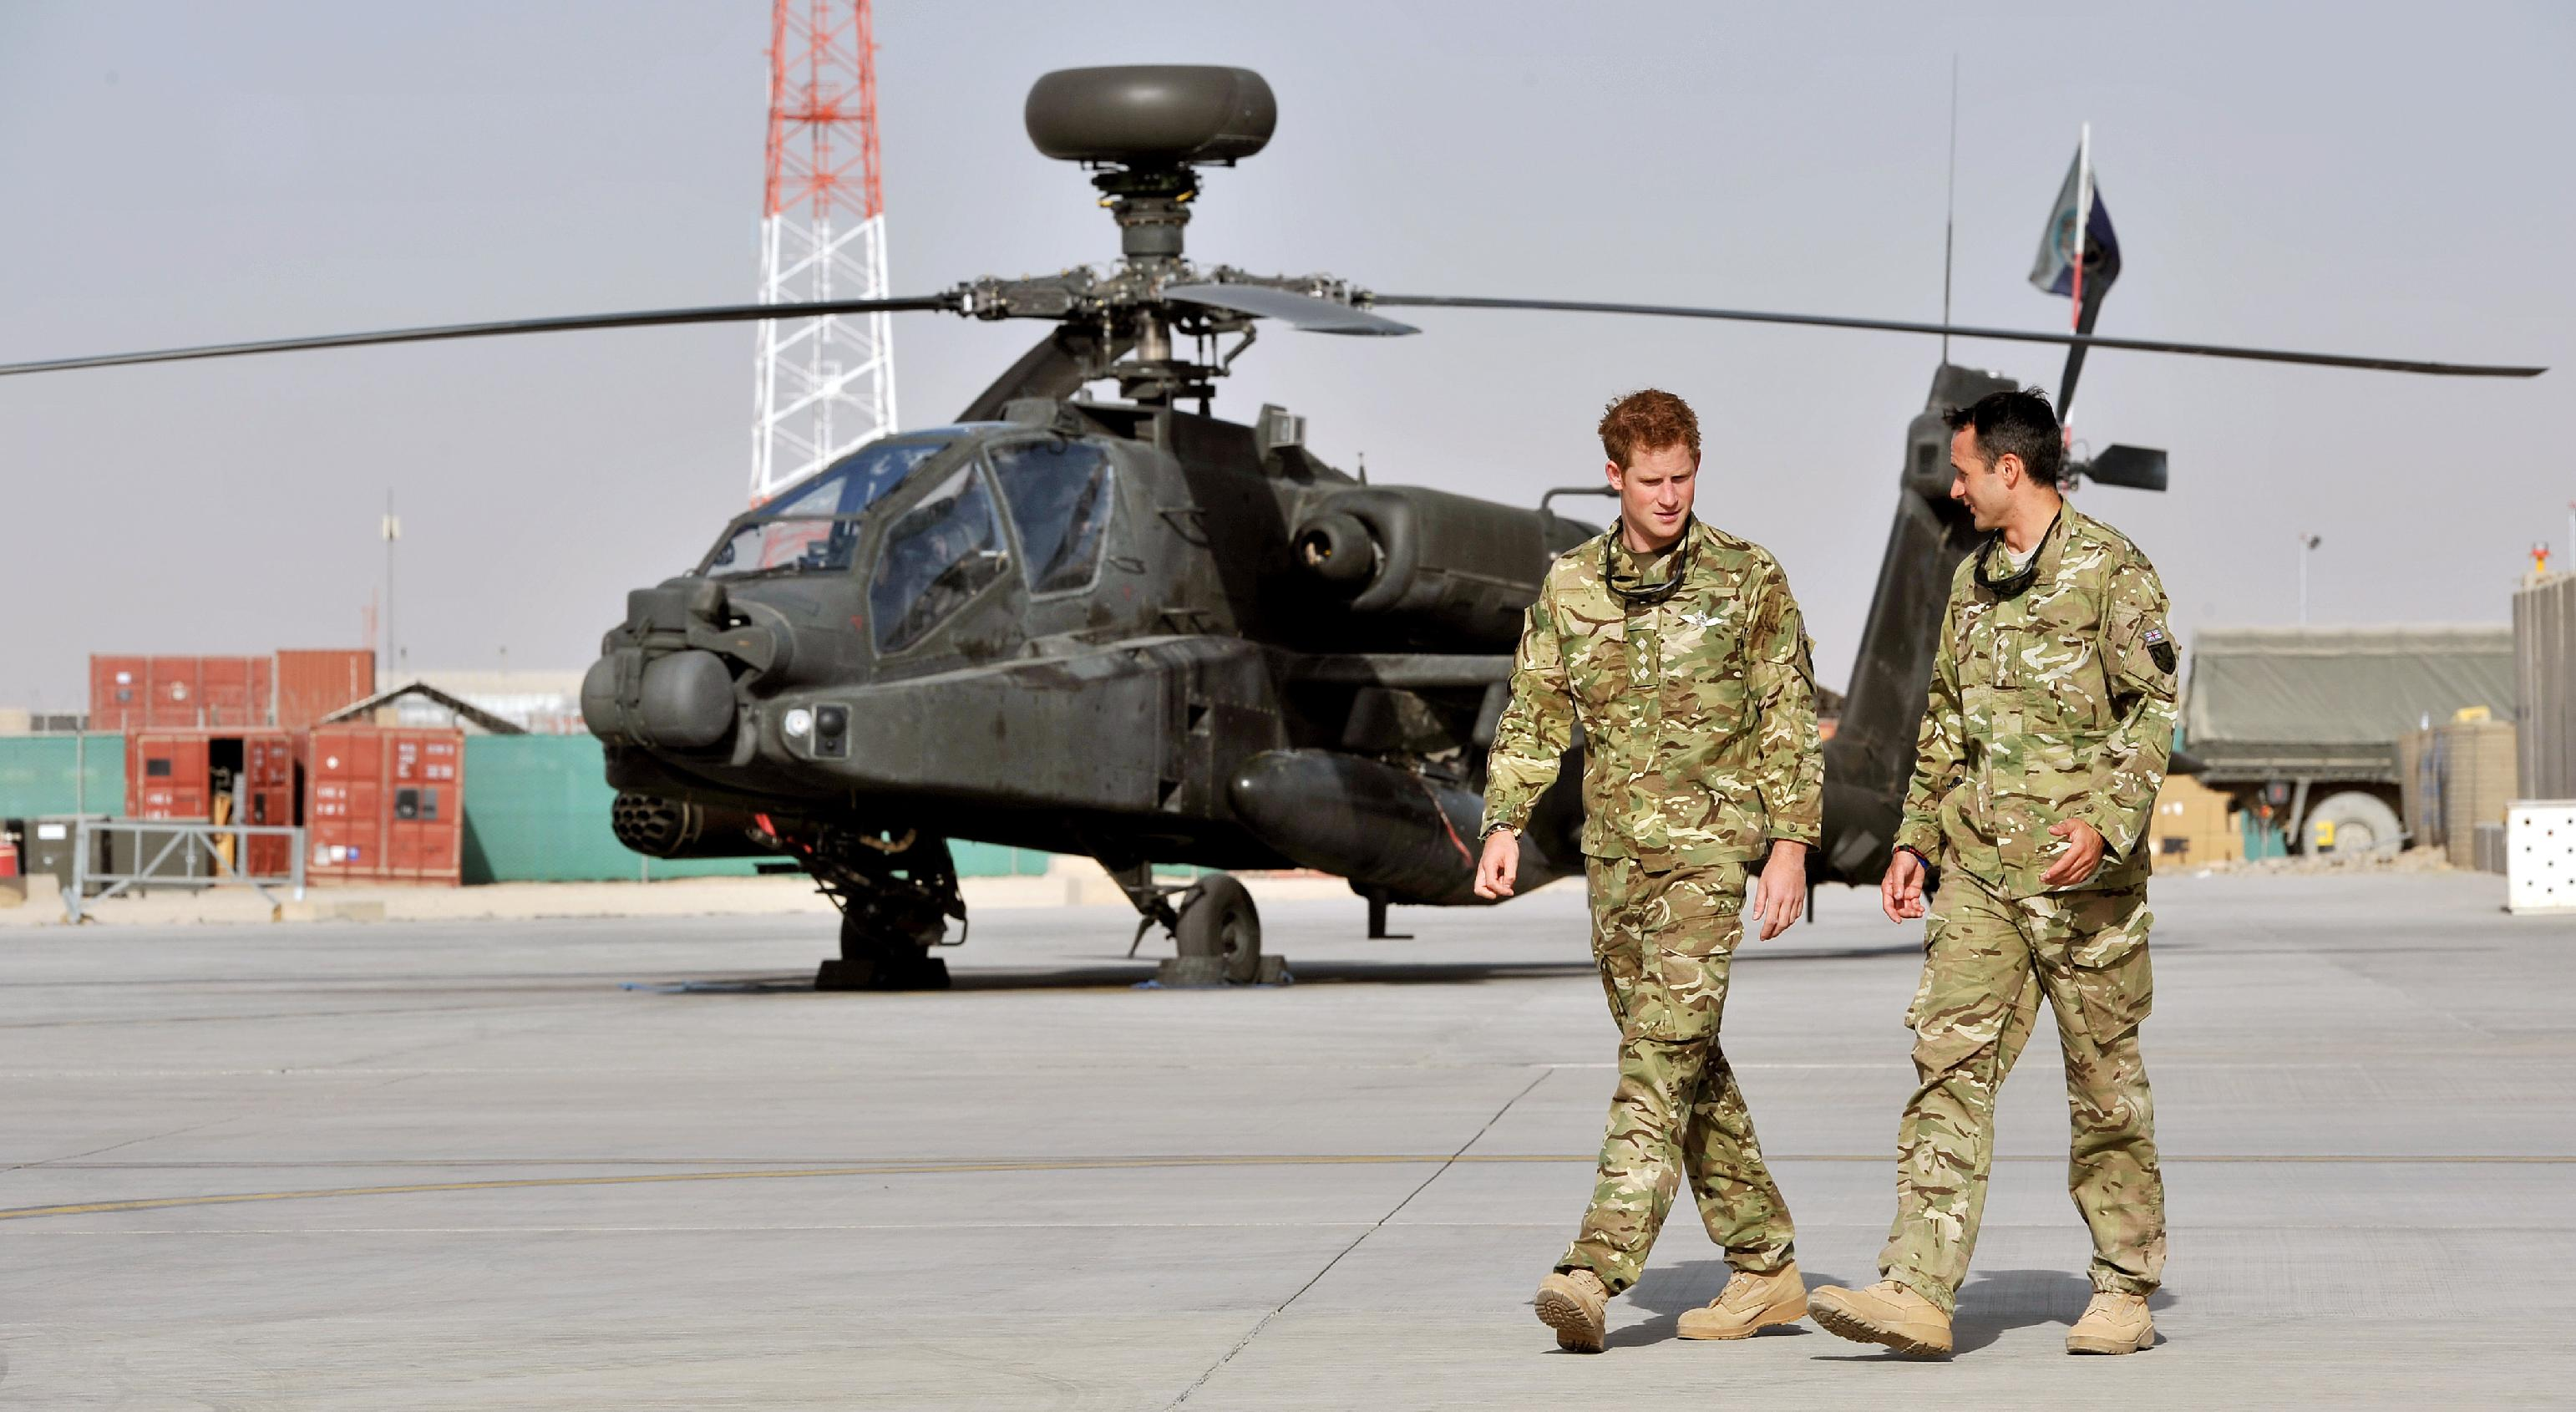 Britain's Prince Harry is shown the Apache flight-line Friday Sept 7 2012 by a member of his squadron (name not provided) at Camp Bastion in Afghanistan, where he will be operating from during his tour of duty as a co-pilot gunner. The Prince has returned to Afghanistan to fly attack helicopters in the fight against the Taliban. (AP Photo/ John Stillwell, Pool)